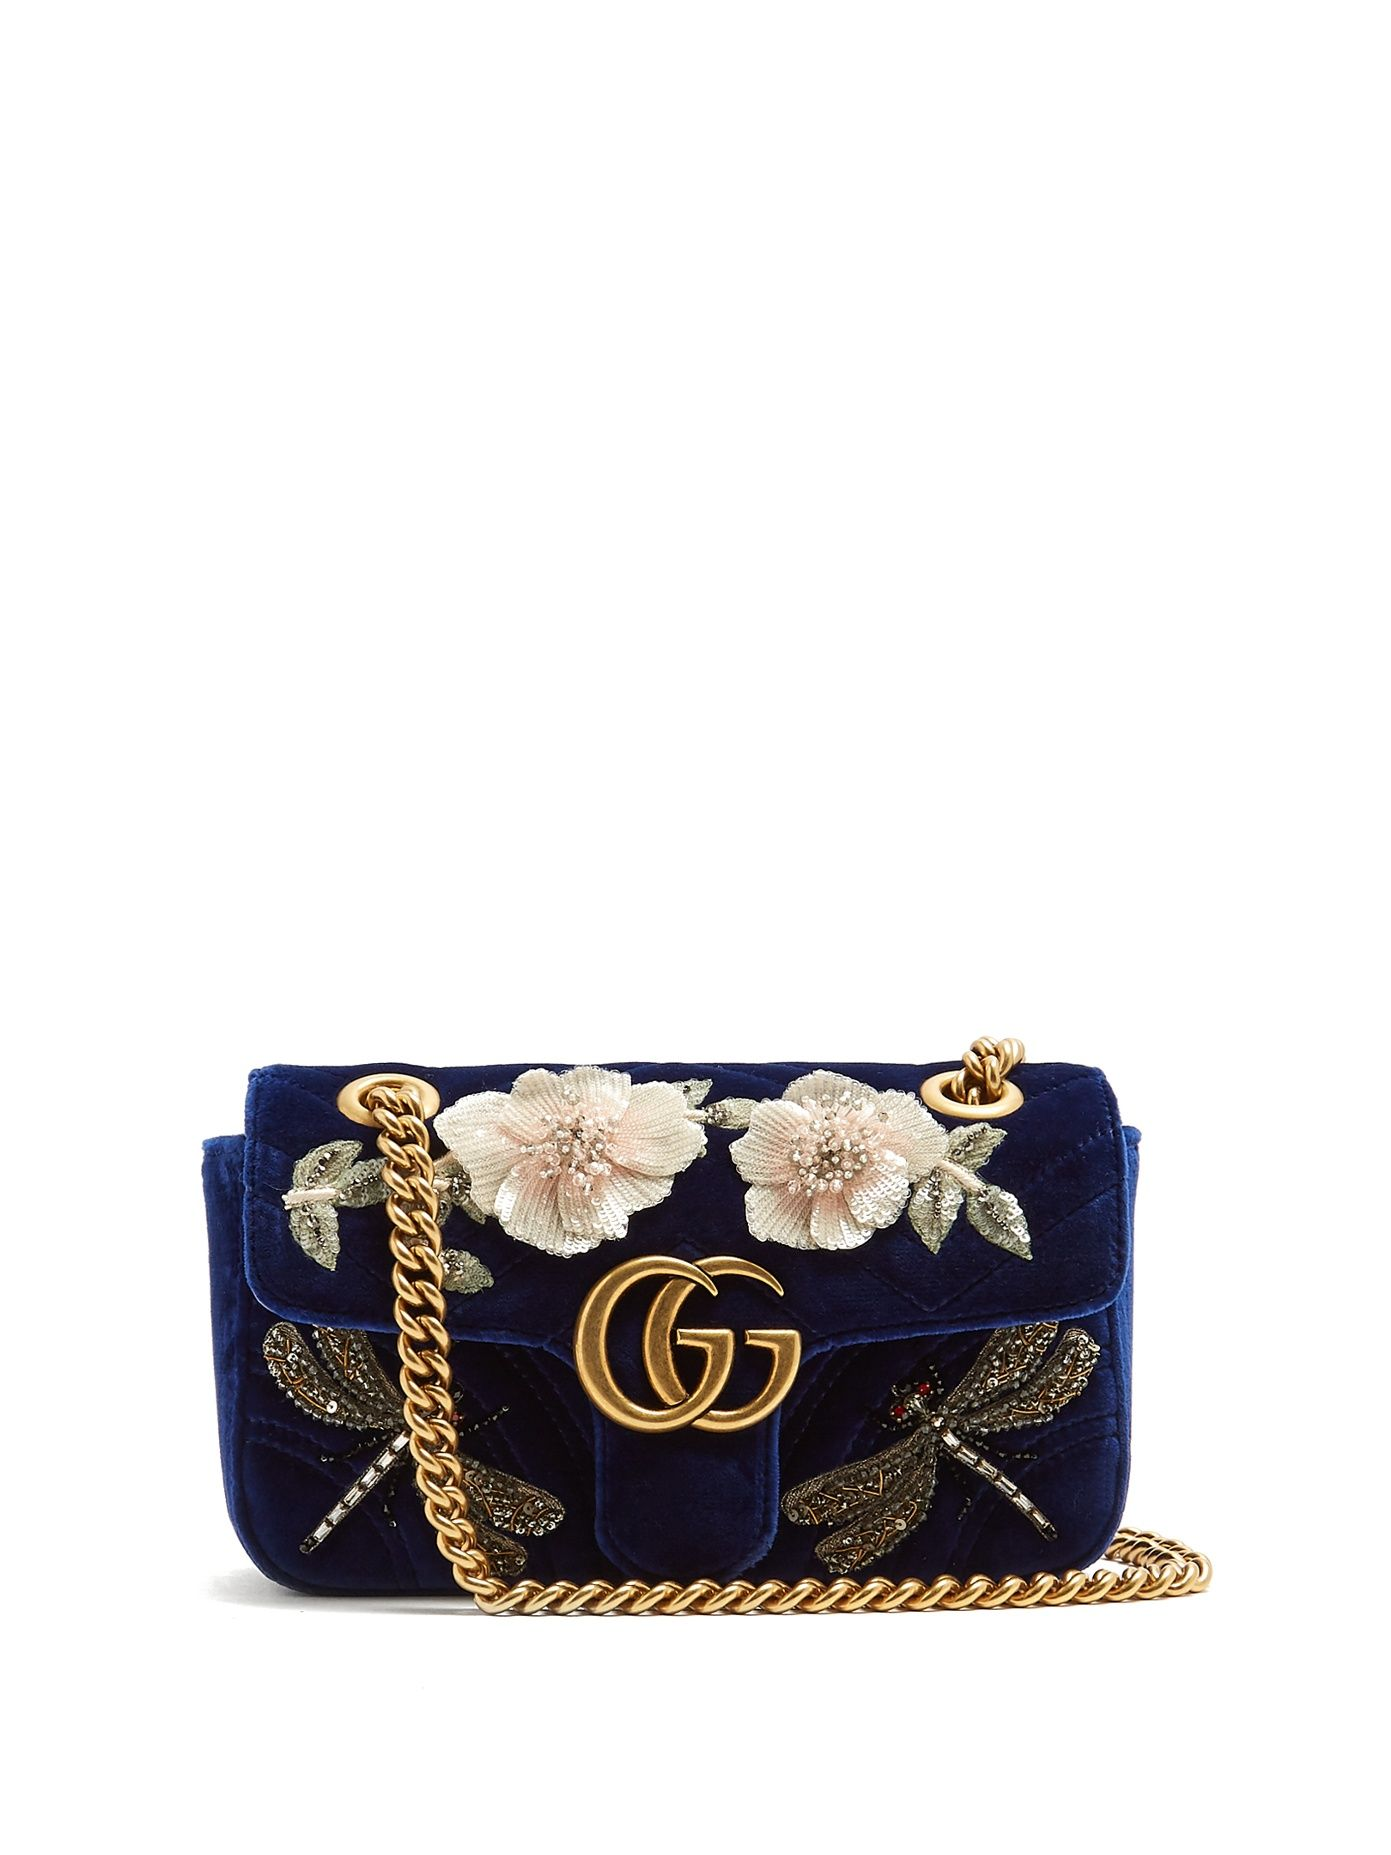 db787b4fb23d Gucci GG Marmont mini quilted-velvet cross-body bag- blue velvet with  embroidered dragonfly beaded detailing